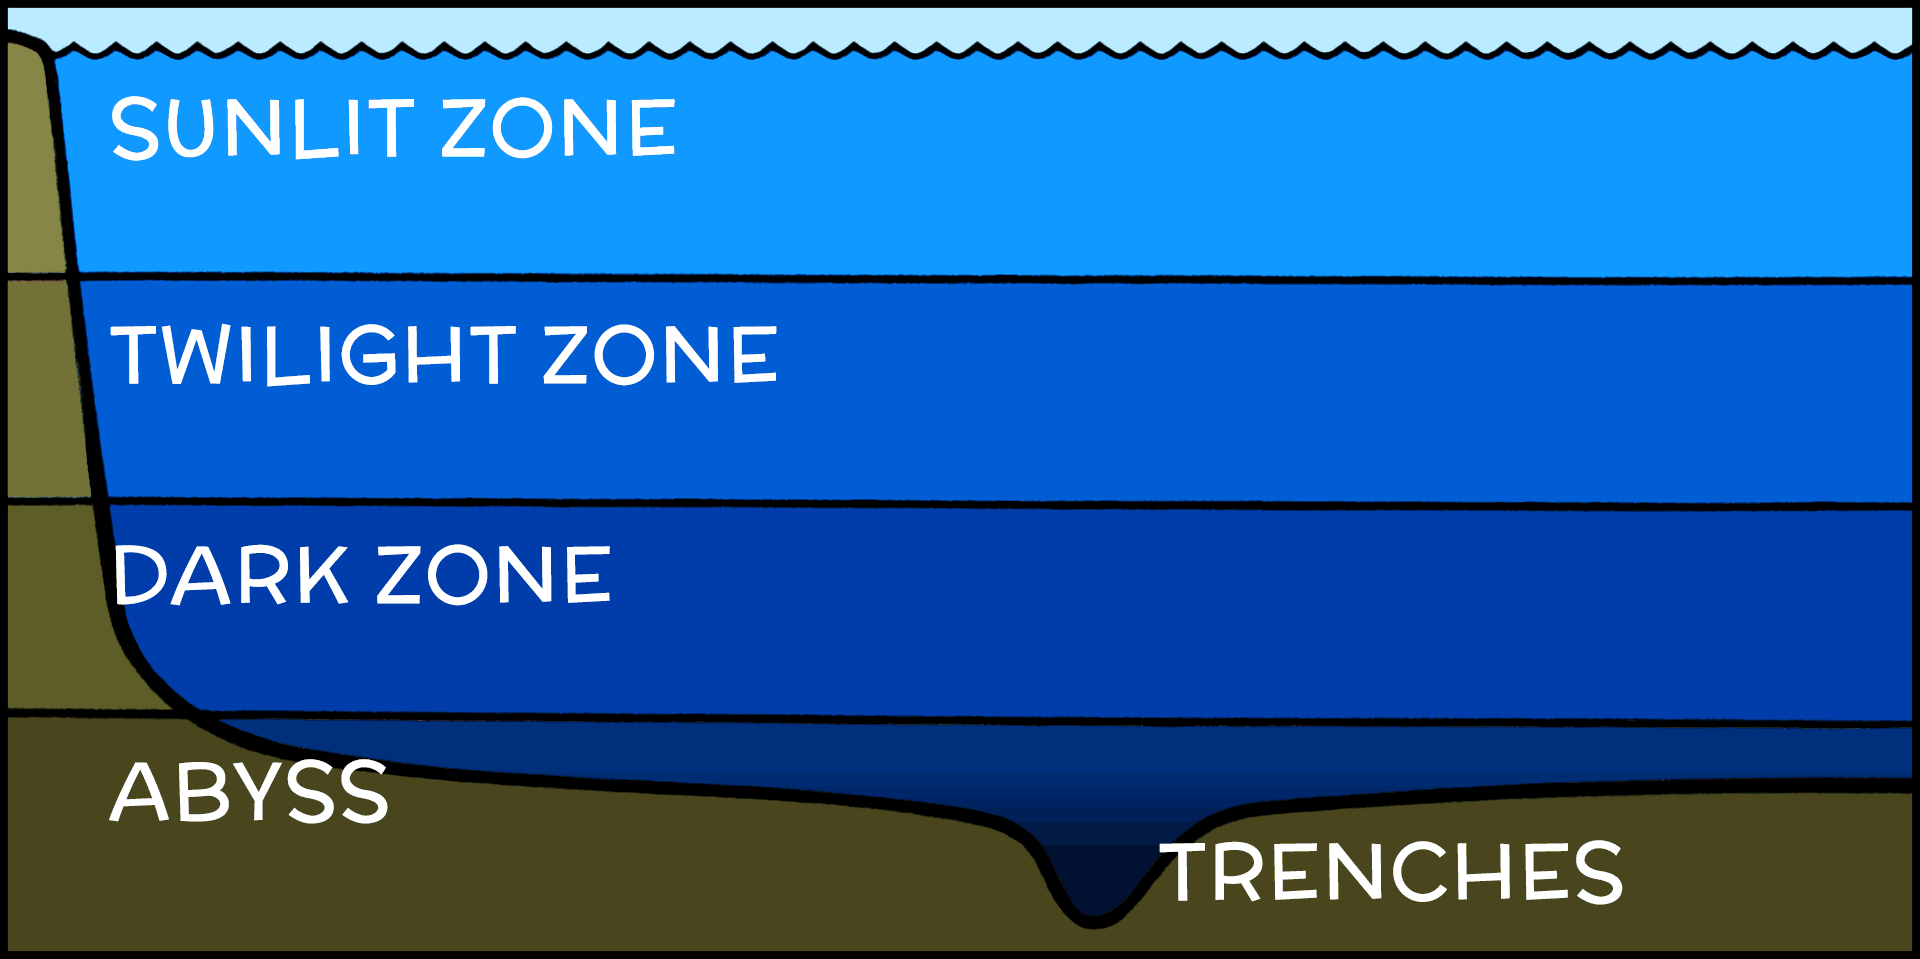 vertical cross-section of the ocean showing the zones